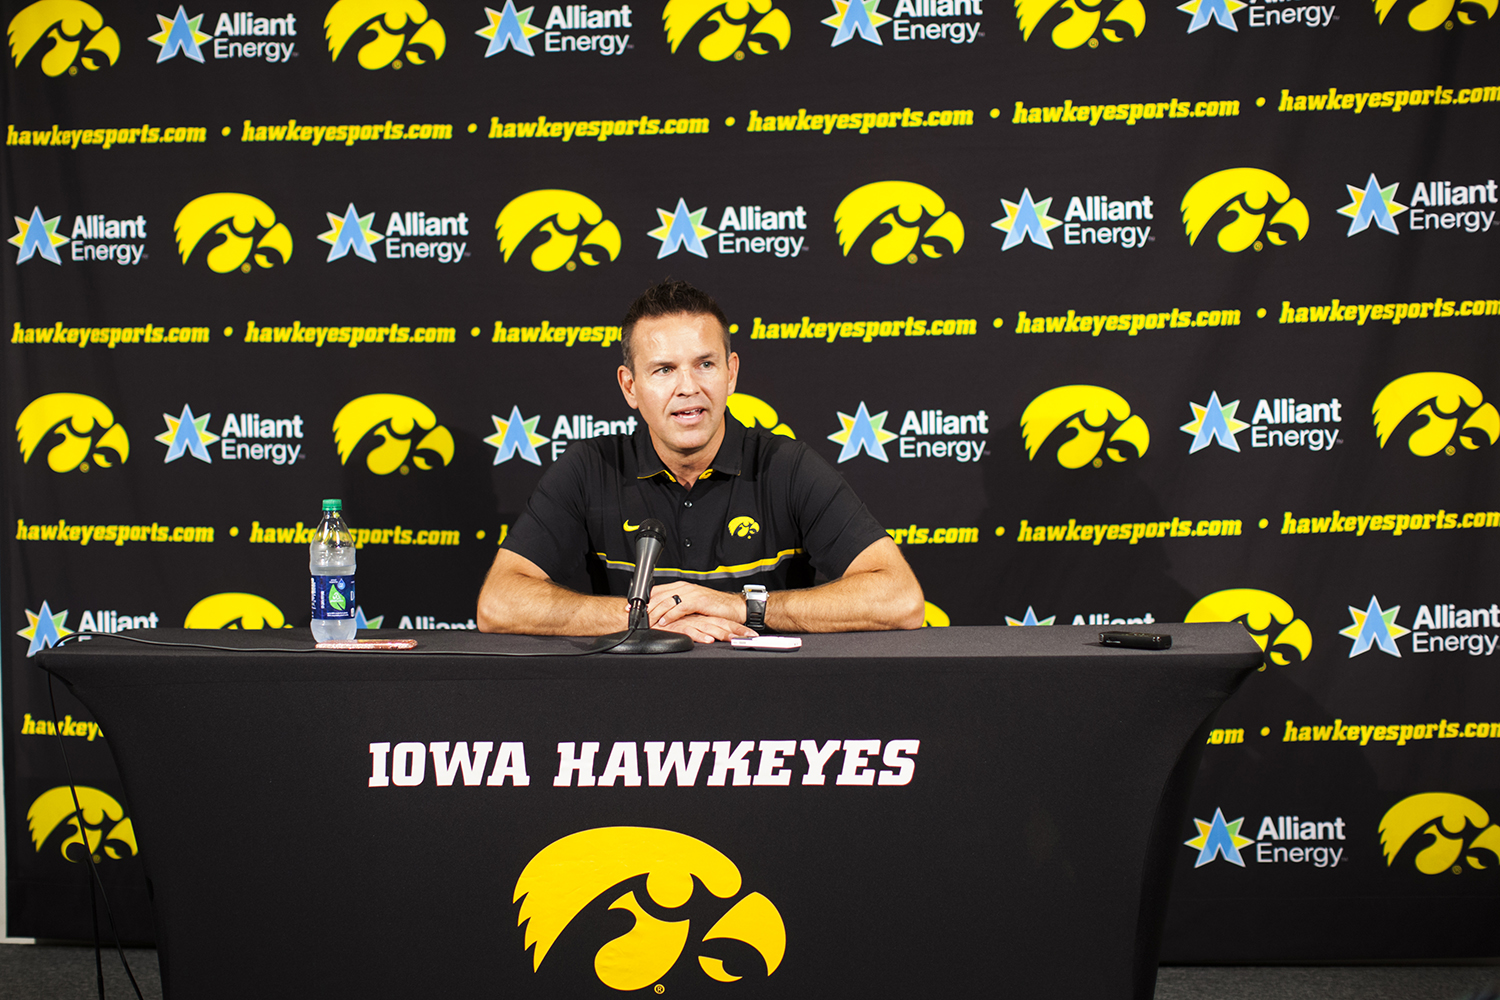 Iowa Volleyball head coach Bond Shymansky speaks to the media at Iowa Volleyball Media Day at Carver Hawkeye Arena on Friday, August 17, 2018. The Hawkeyes kick off their 2018 season on August 25 against Southern Methodist University at the LUV Invitational in Nashville, Tennessee, and open at home on September 9 against Eastern Illinois. (Lily Smith/The Daily Iowan)